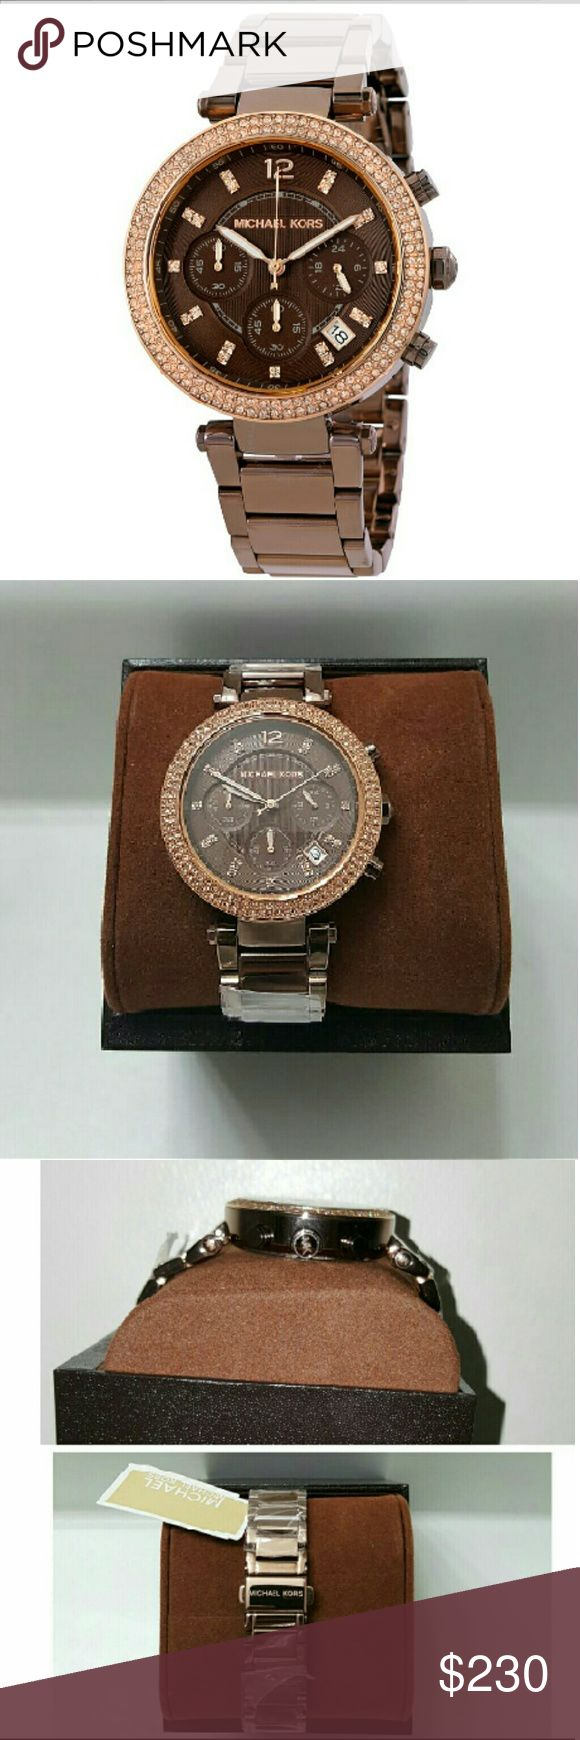 NWT Michael kors chronograph Parker watch MICHAEL KORS Parker Chronograph Ladies Watch    Firm price  $245.00  . AUTHENTIC WATCH  . AUTHENTIC BOX  . AUTHENTIC MANUAL    SHIPPING  PLEASE ALLOW FEW BUSINESS DAYS FOR ME TO SHIPPED IT OFF.I HAVE TO GET IT FROM MY WAREHOUSE.    THANK YOU FOR YOUR UNDERSTANDING. Michael Kors Accessories Watches